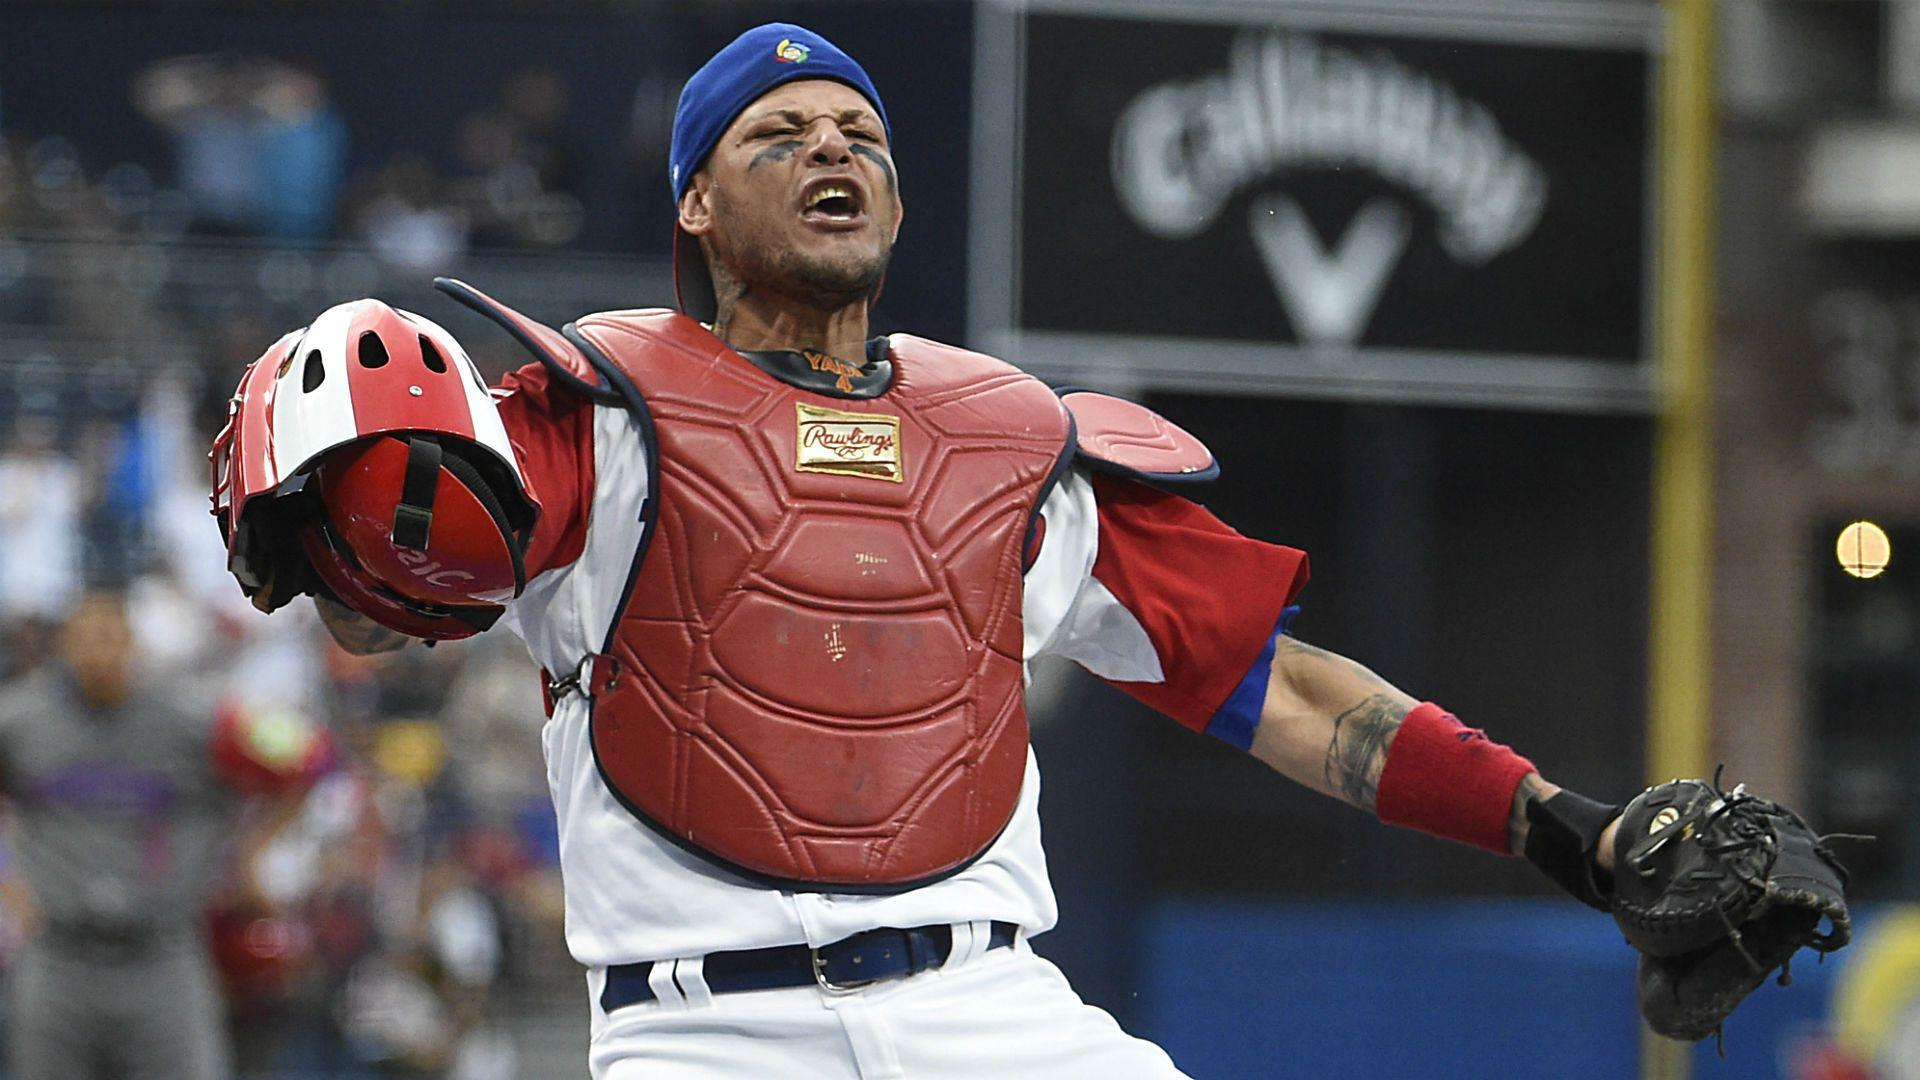 The internet wants to know how a ball got stuck to Yadier Molina's